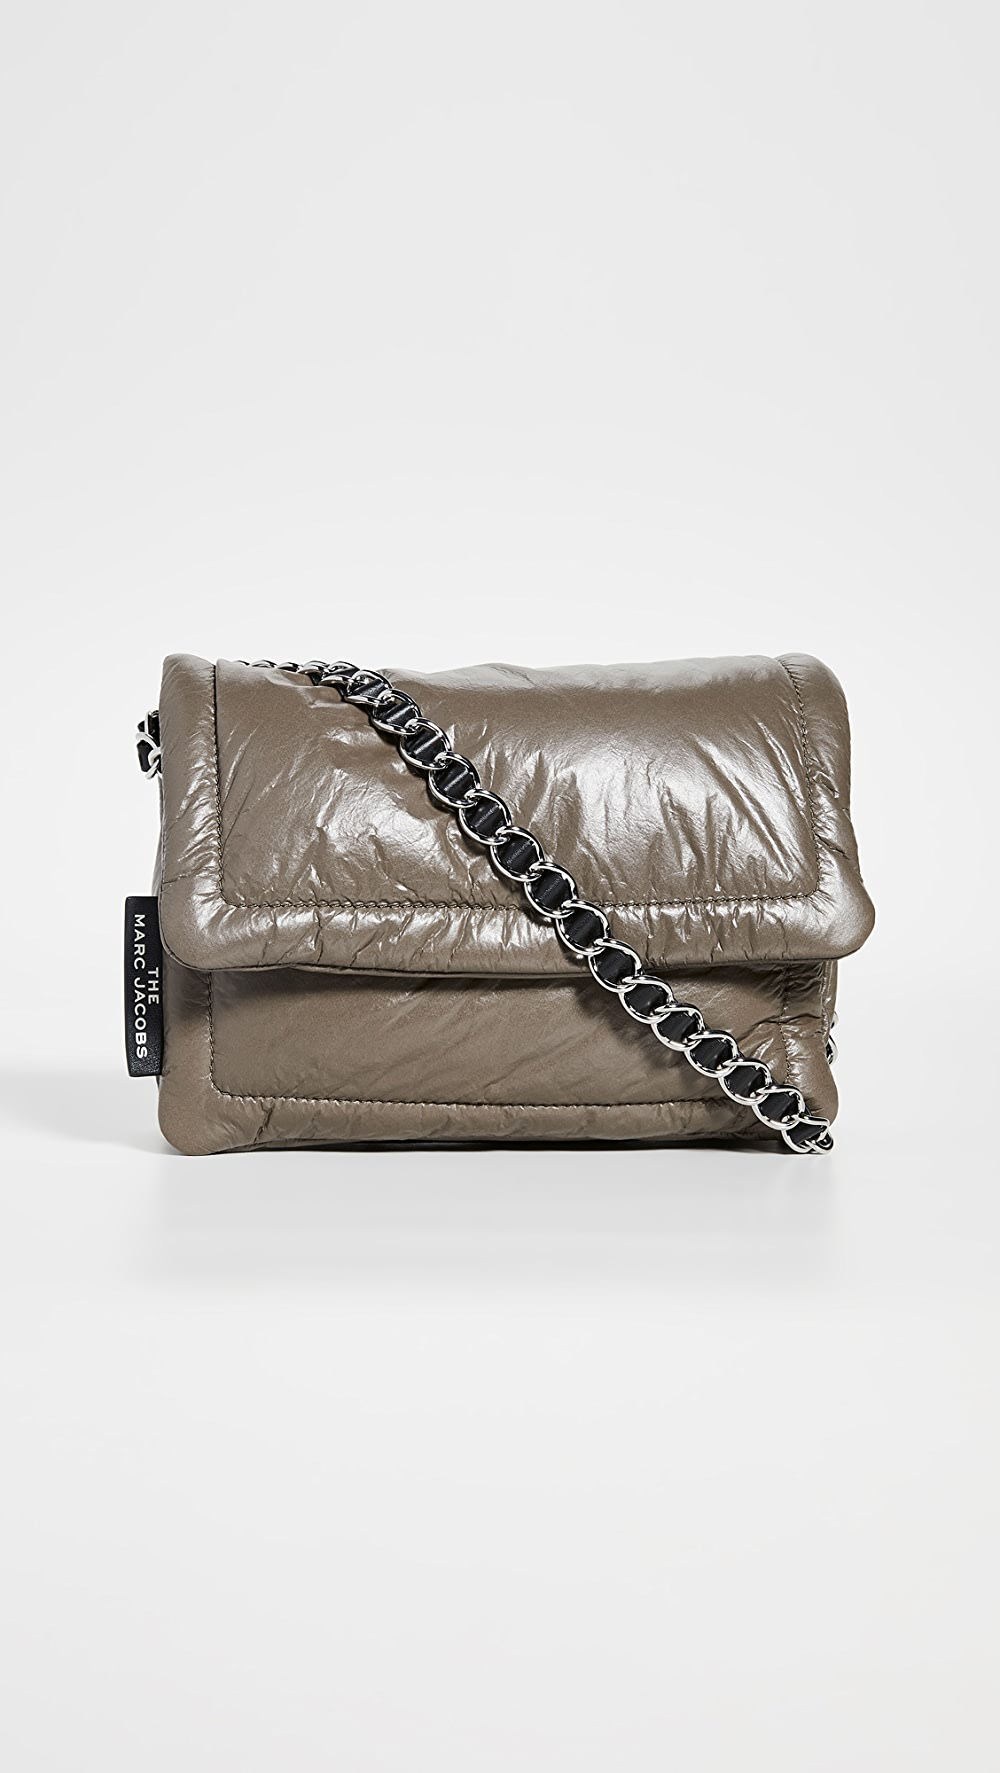 Logical The Marc Jacobs - The Pillow Bag Quality First